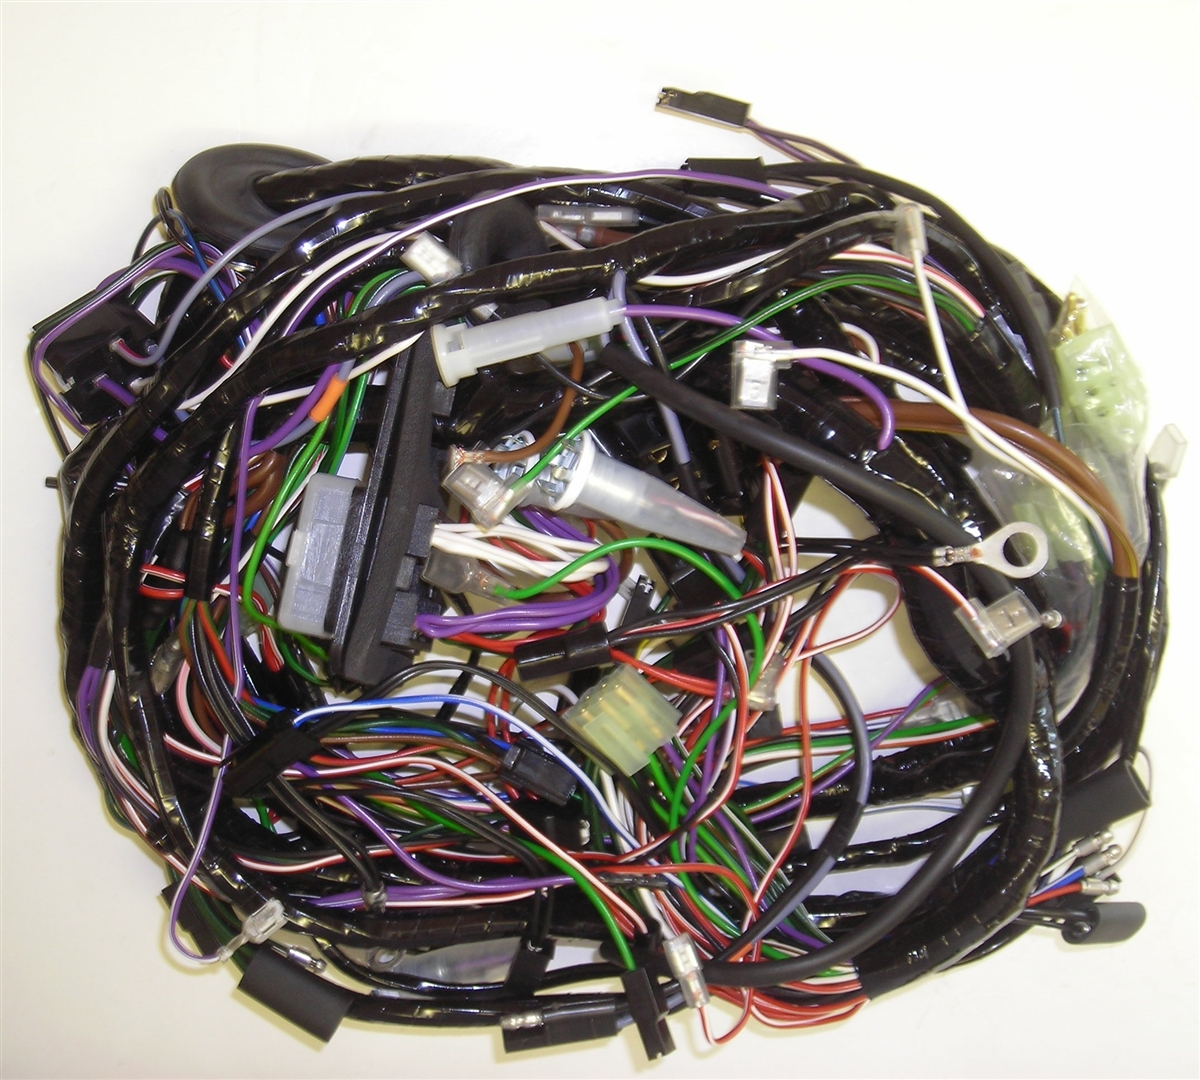 1531(3) 2?1443618008 spitfire1500 main wiring harness 73 triumph spitfire 1500 wiring harness at n-0.co